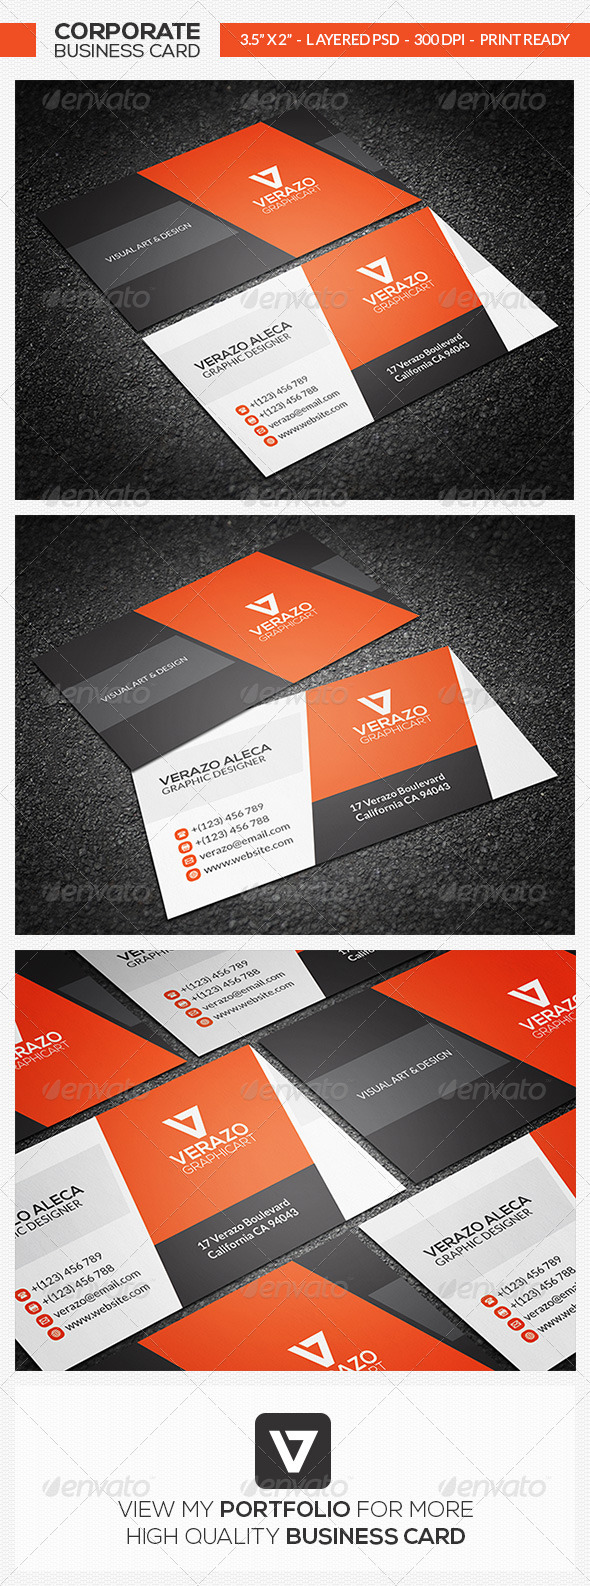 GraphicRiver Creative Corporate Business Card 31 7576865